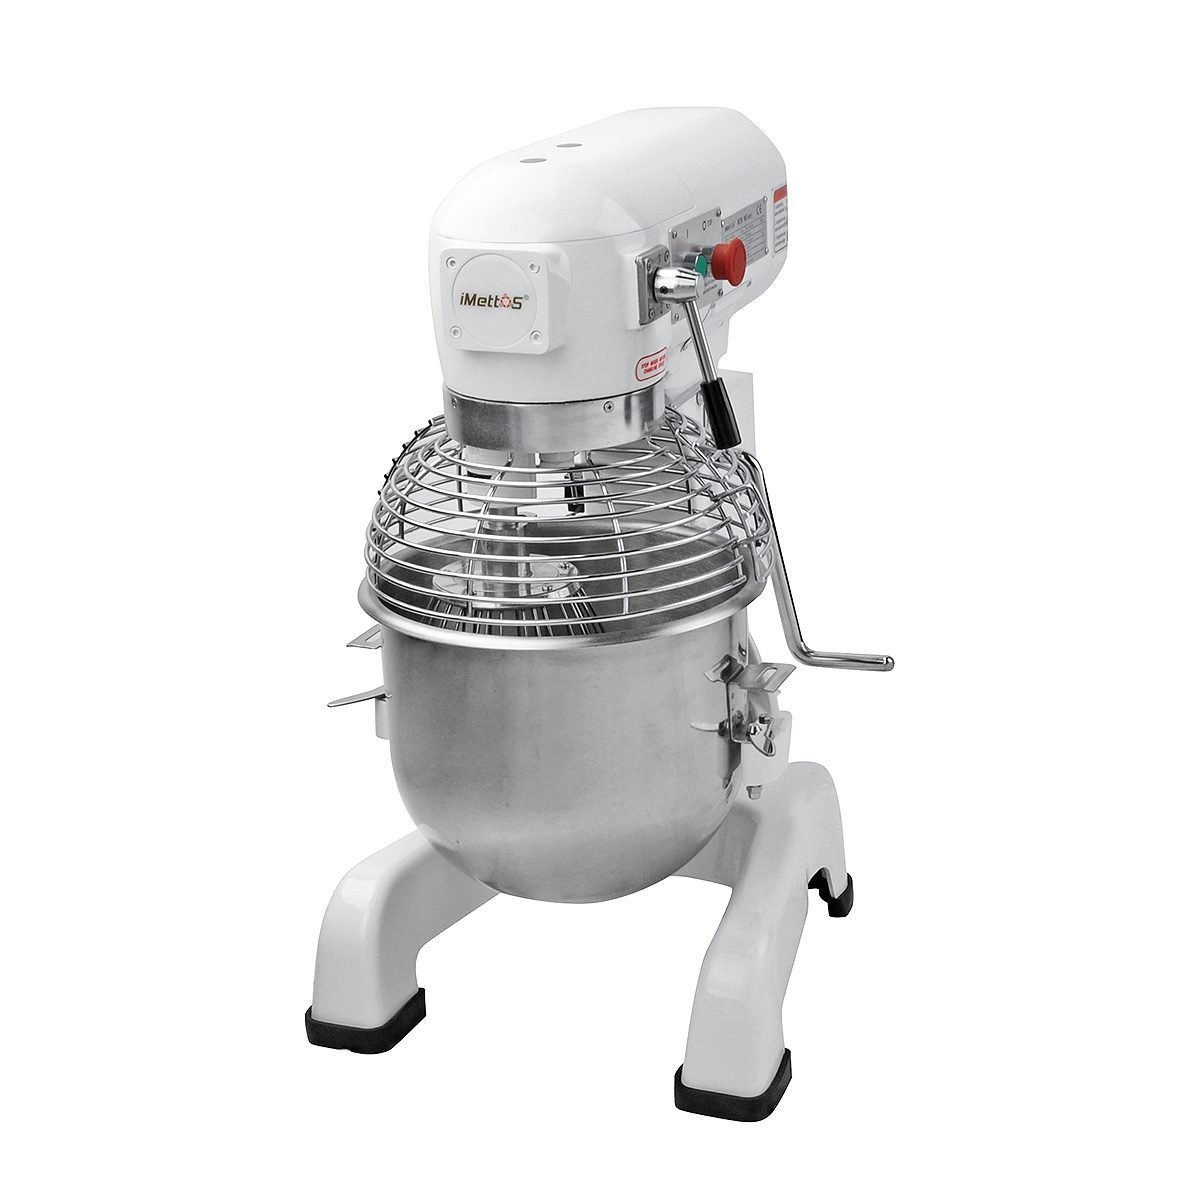 New Imettos 701002 20 Ltr Planetary Mixer For Sale